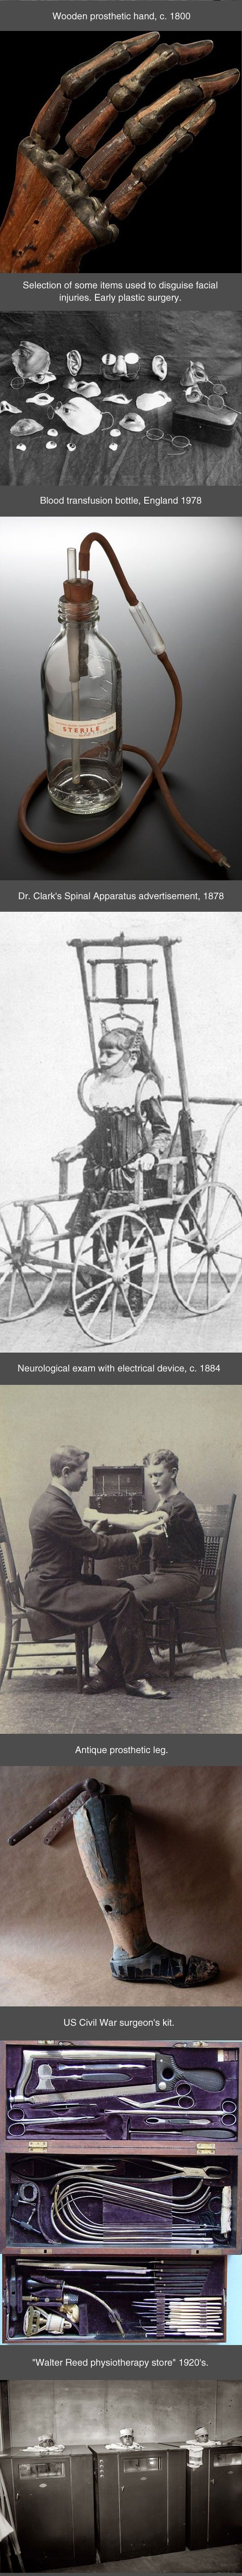 Creepy Medical Images From The Past